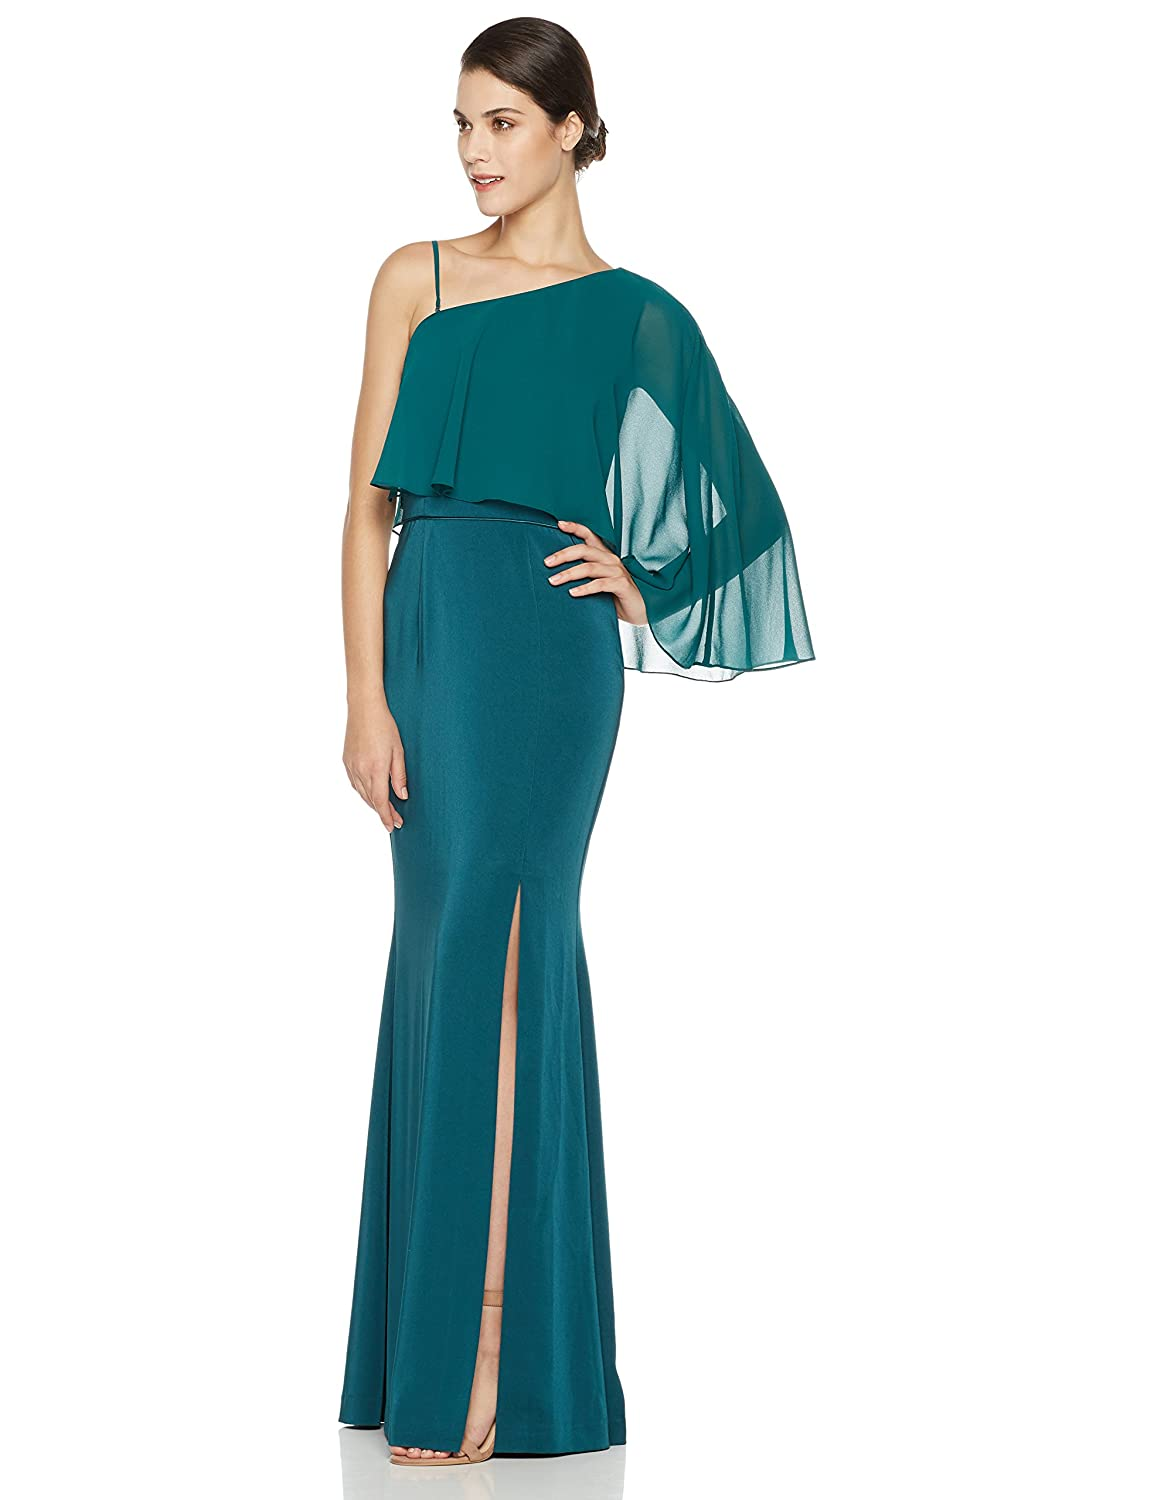 c63d99ffd8 Floor-length gown featuring asymmetrical neckline with sheer chiffon popover  and slit skirt. Back zipper